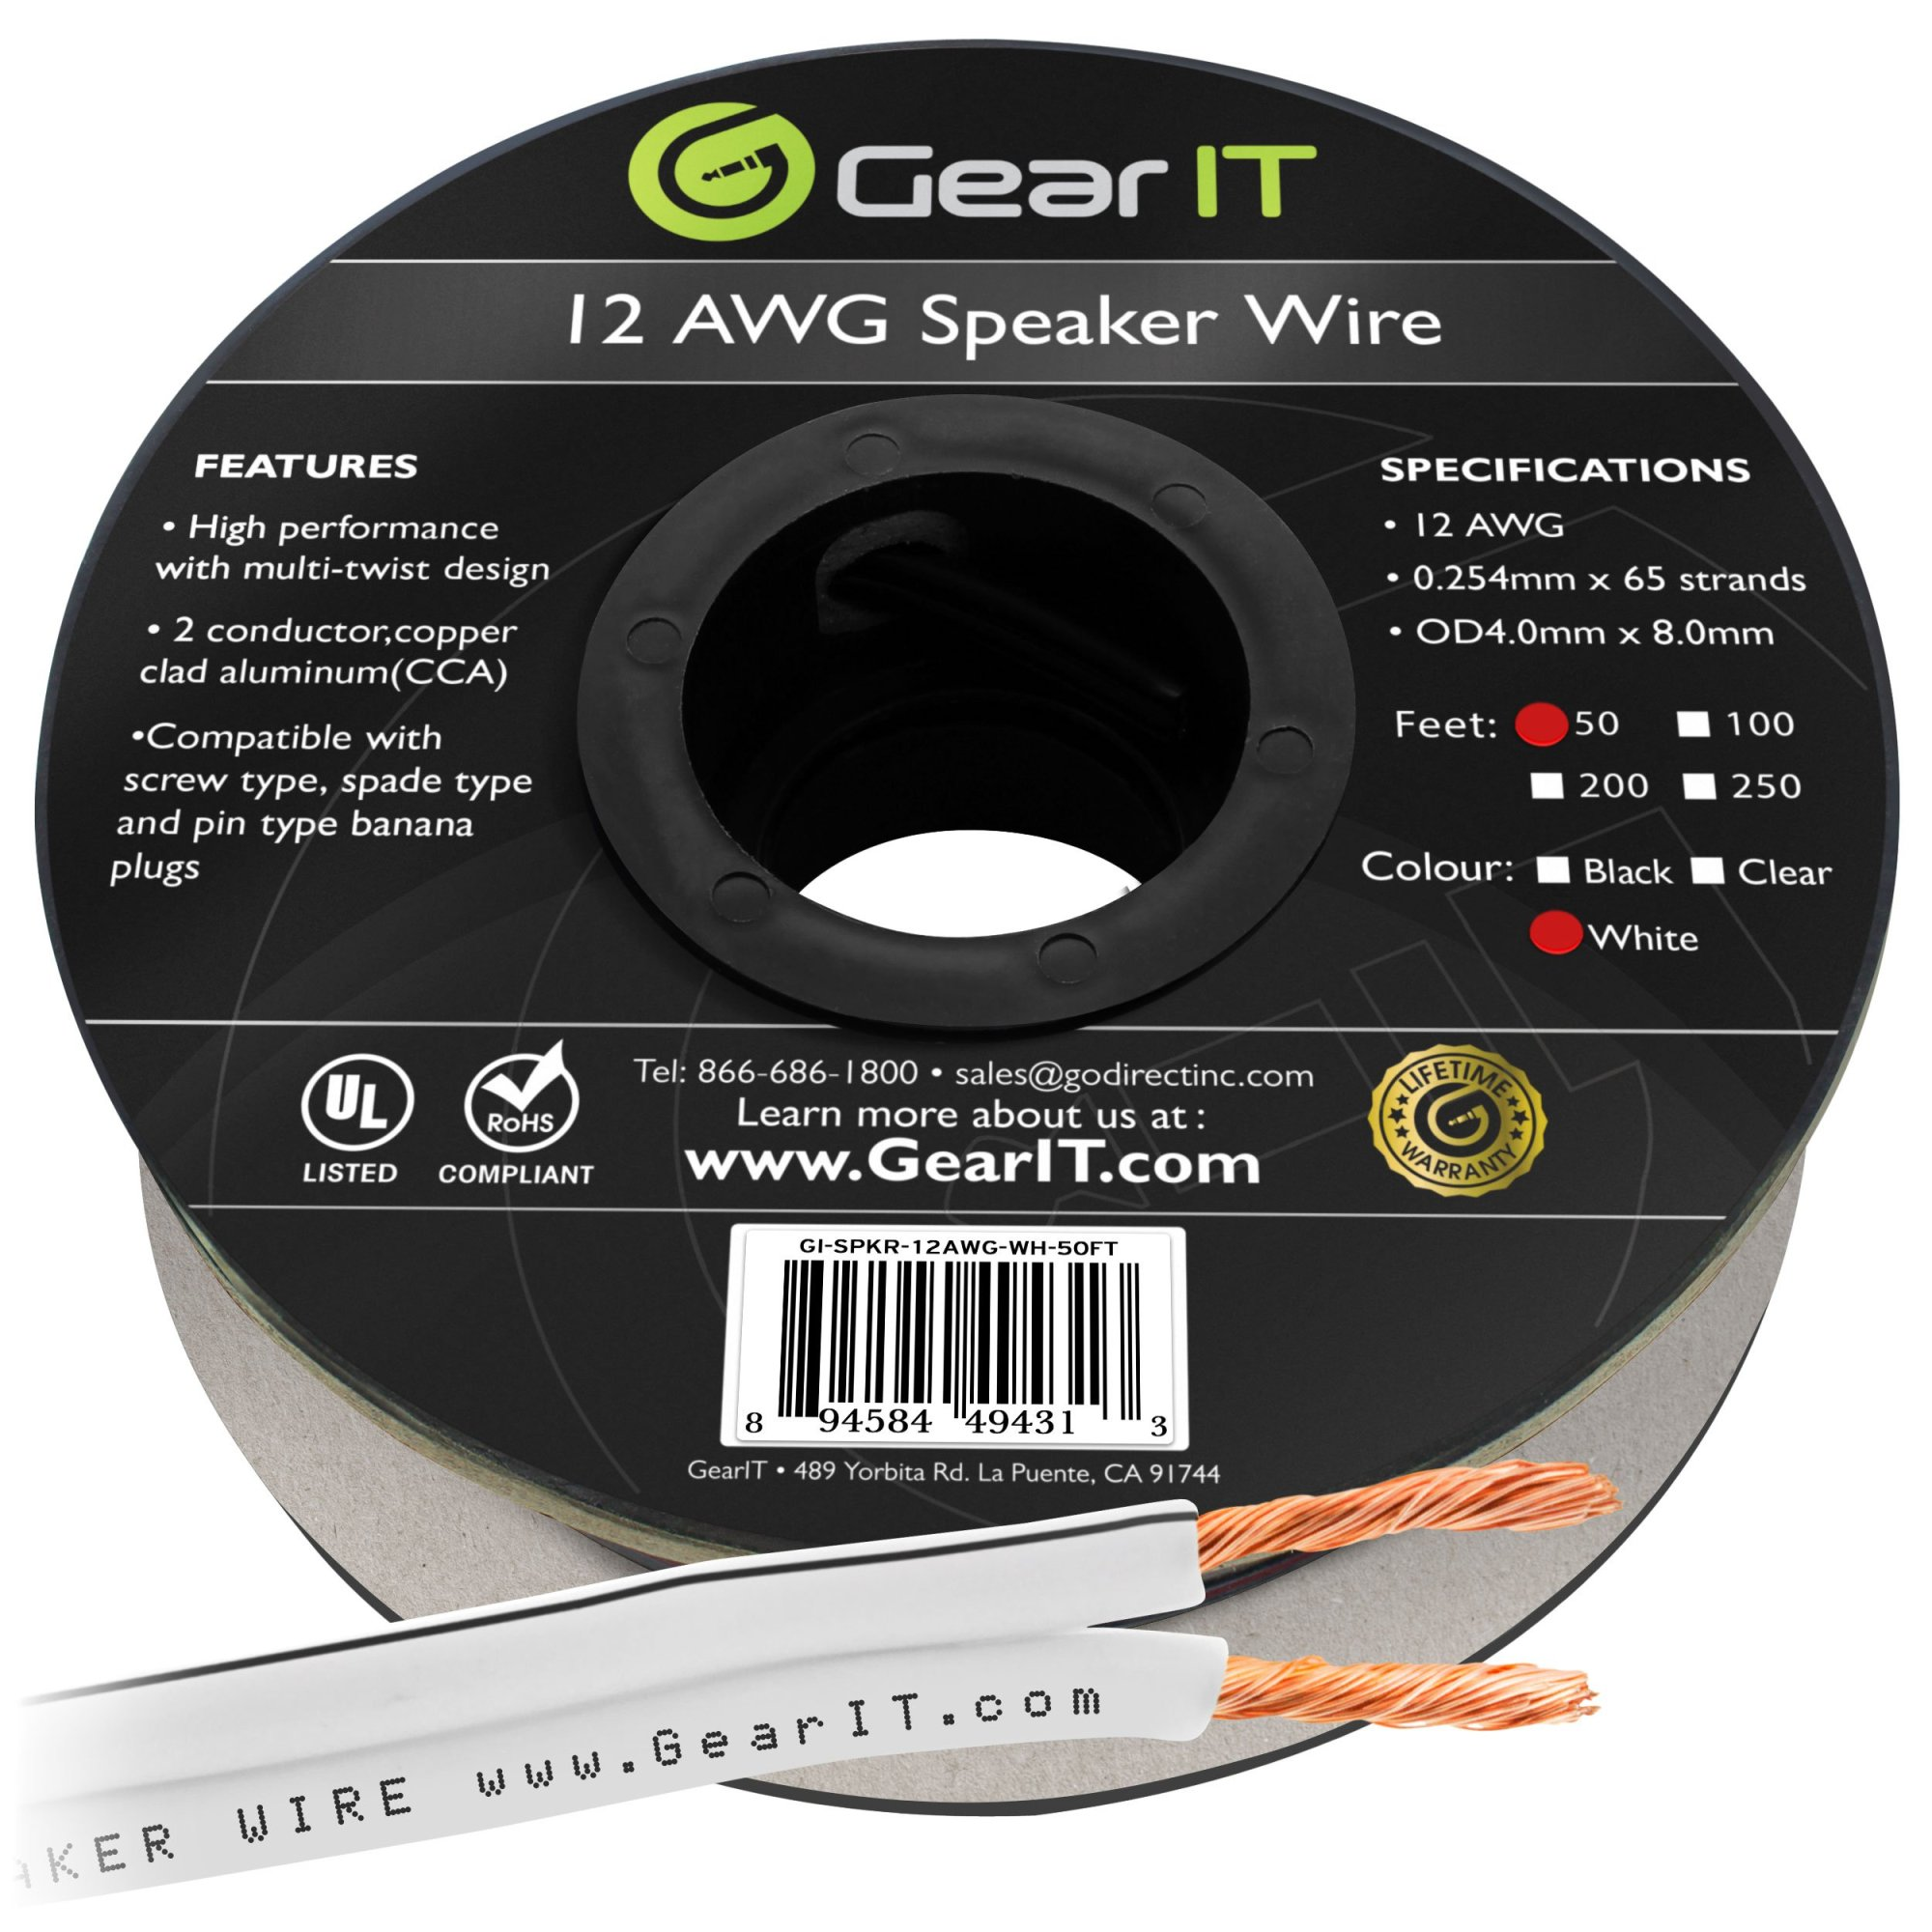 hight resolution of 12awg speaker wire gearit pro series 12 awg gauge speaker wire cable 50 feet 15 24 meters great use for home theater speakers and car speakers white